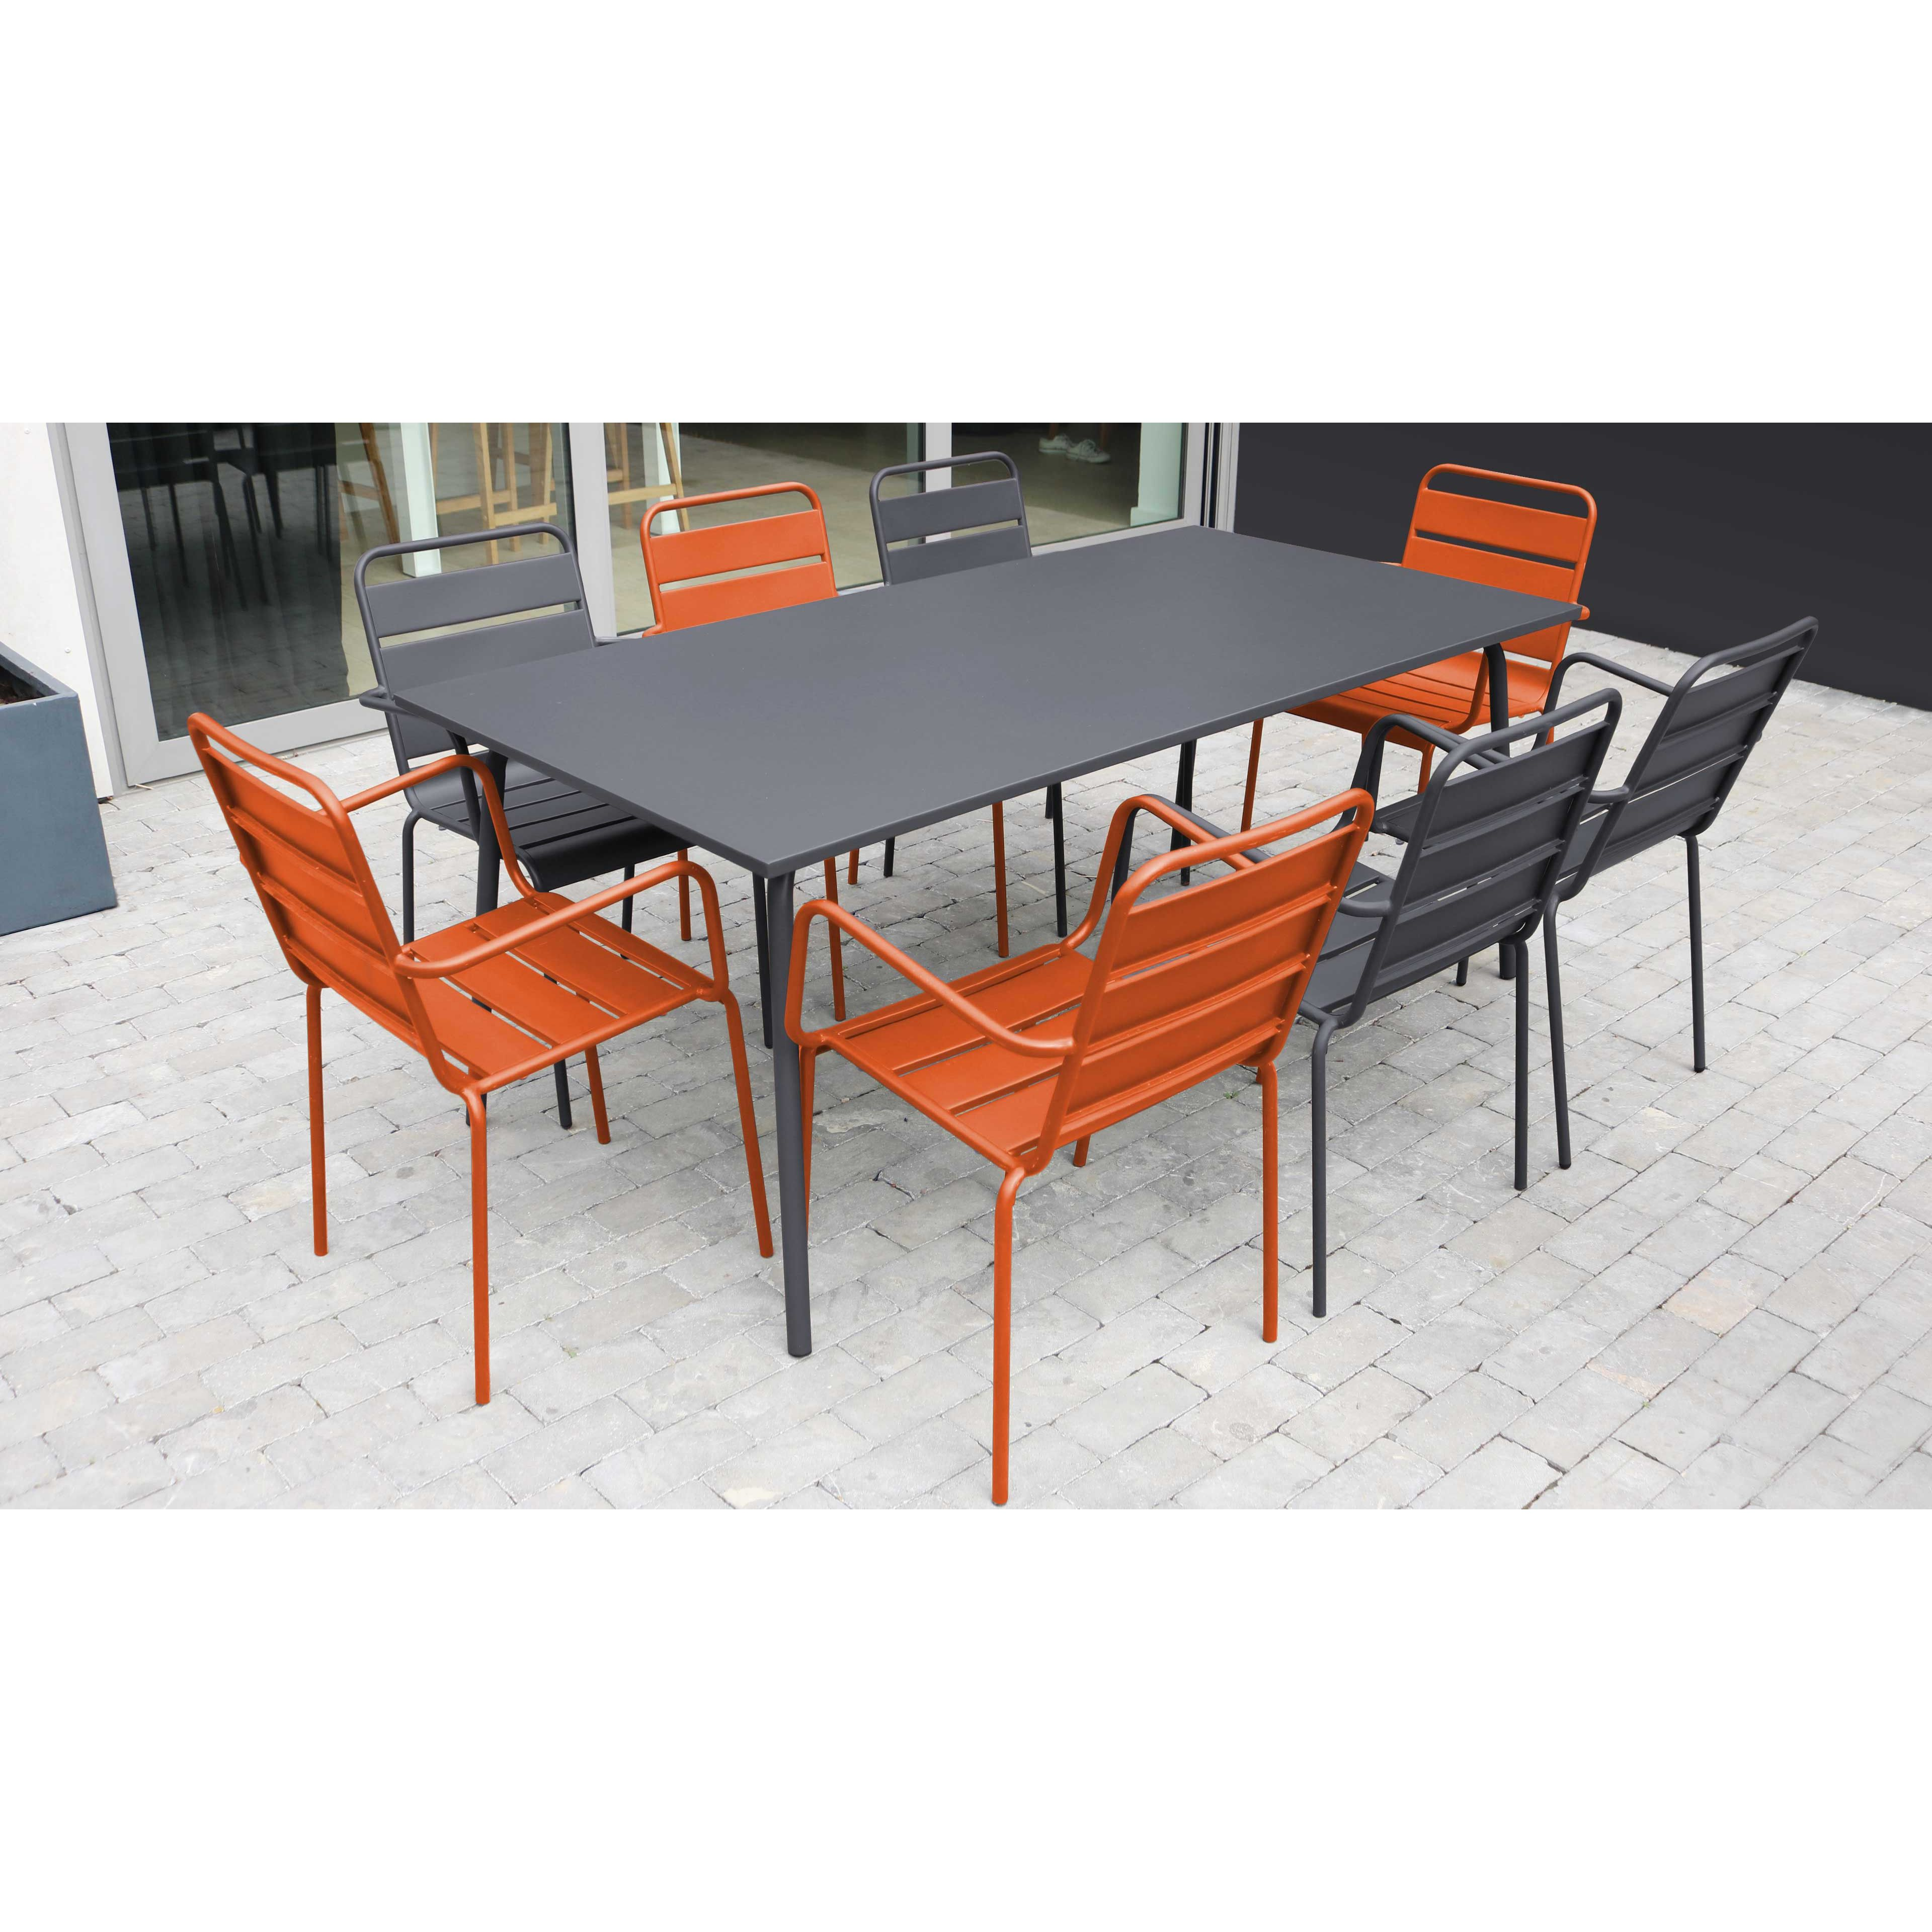 30 parts of the table set \